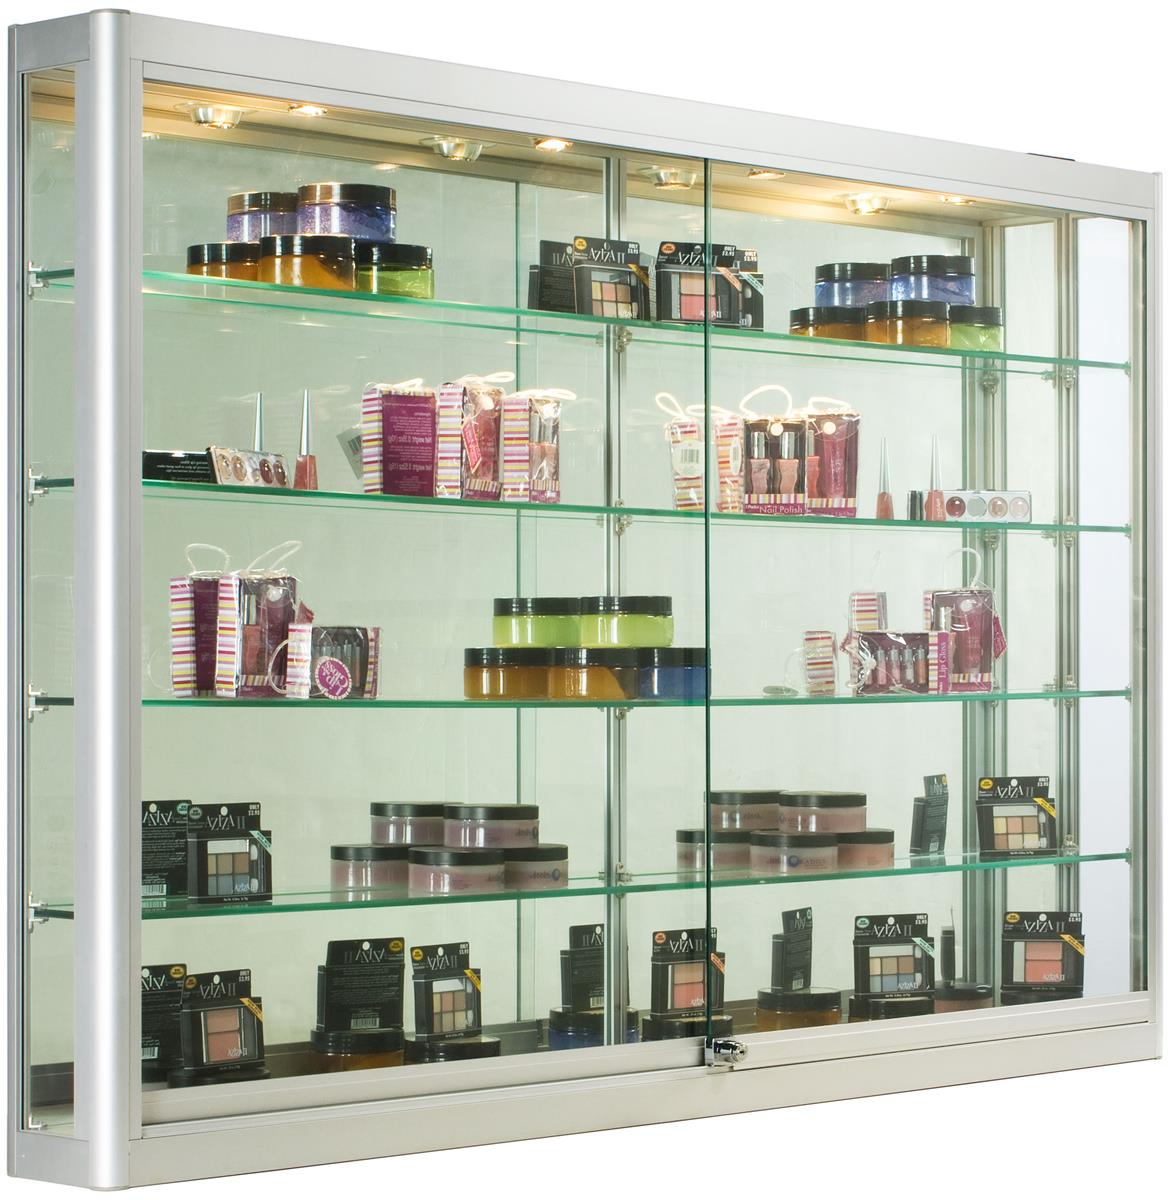 Wall Mounted Display Case 5ft Wall Mounted Display Case W 4 Top Halogen Lights Mirror Back Locking Silver